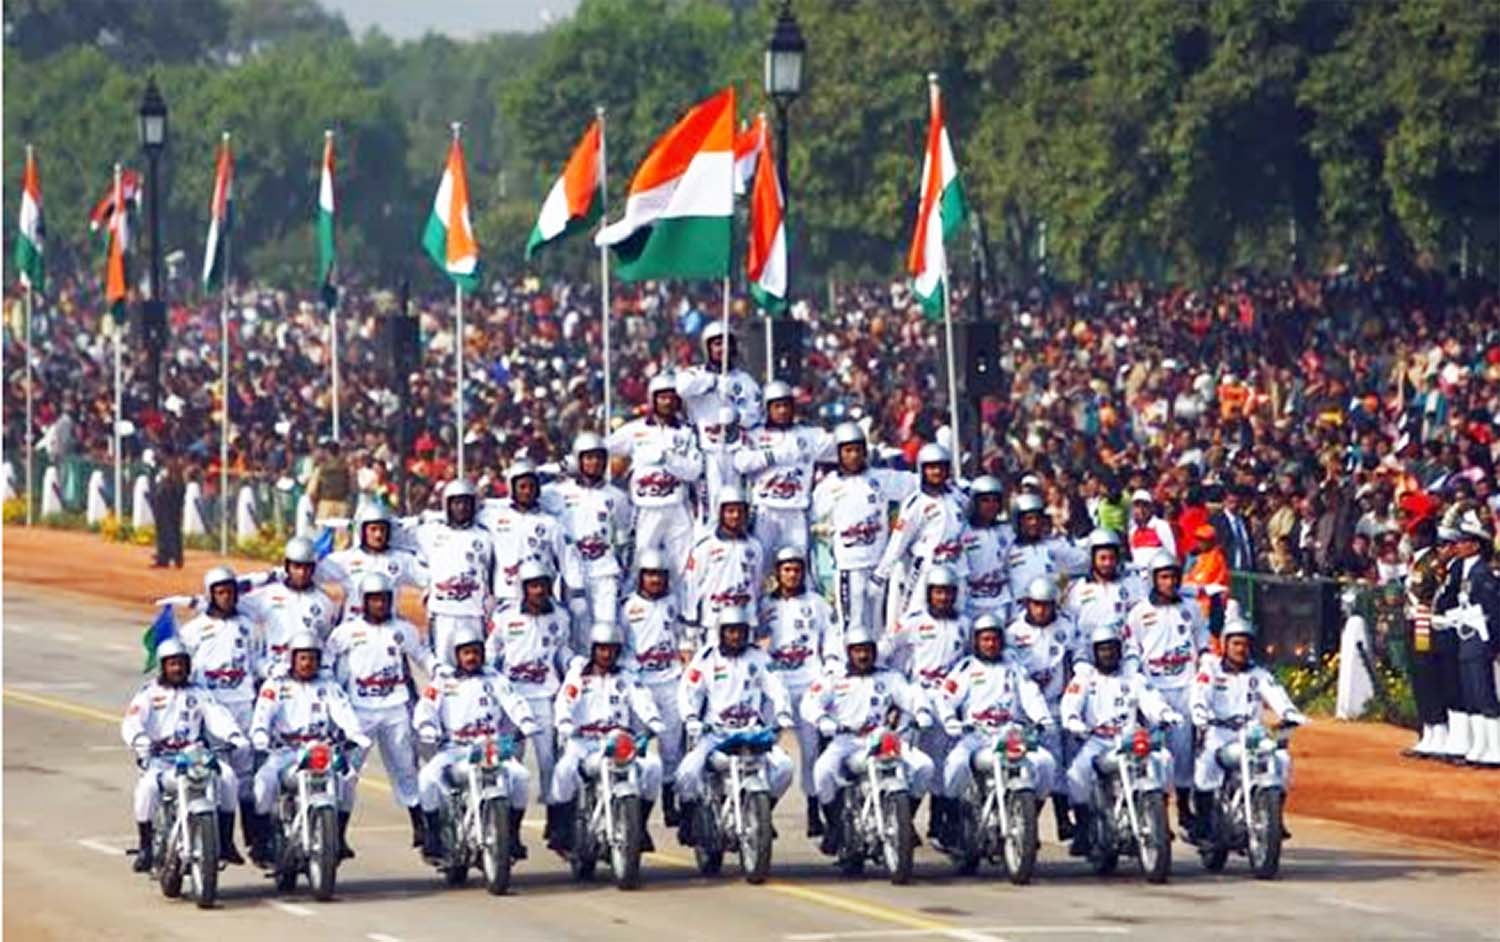 Bike stunt rally on republic day